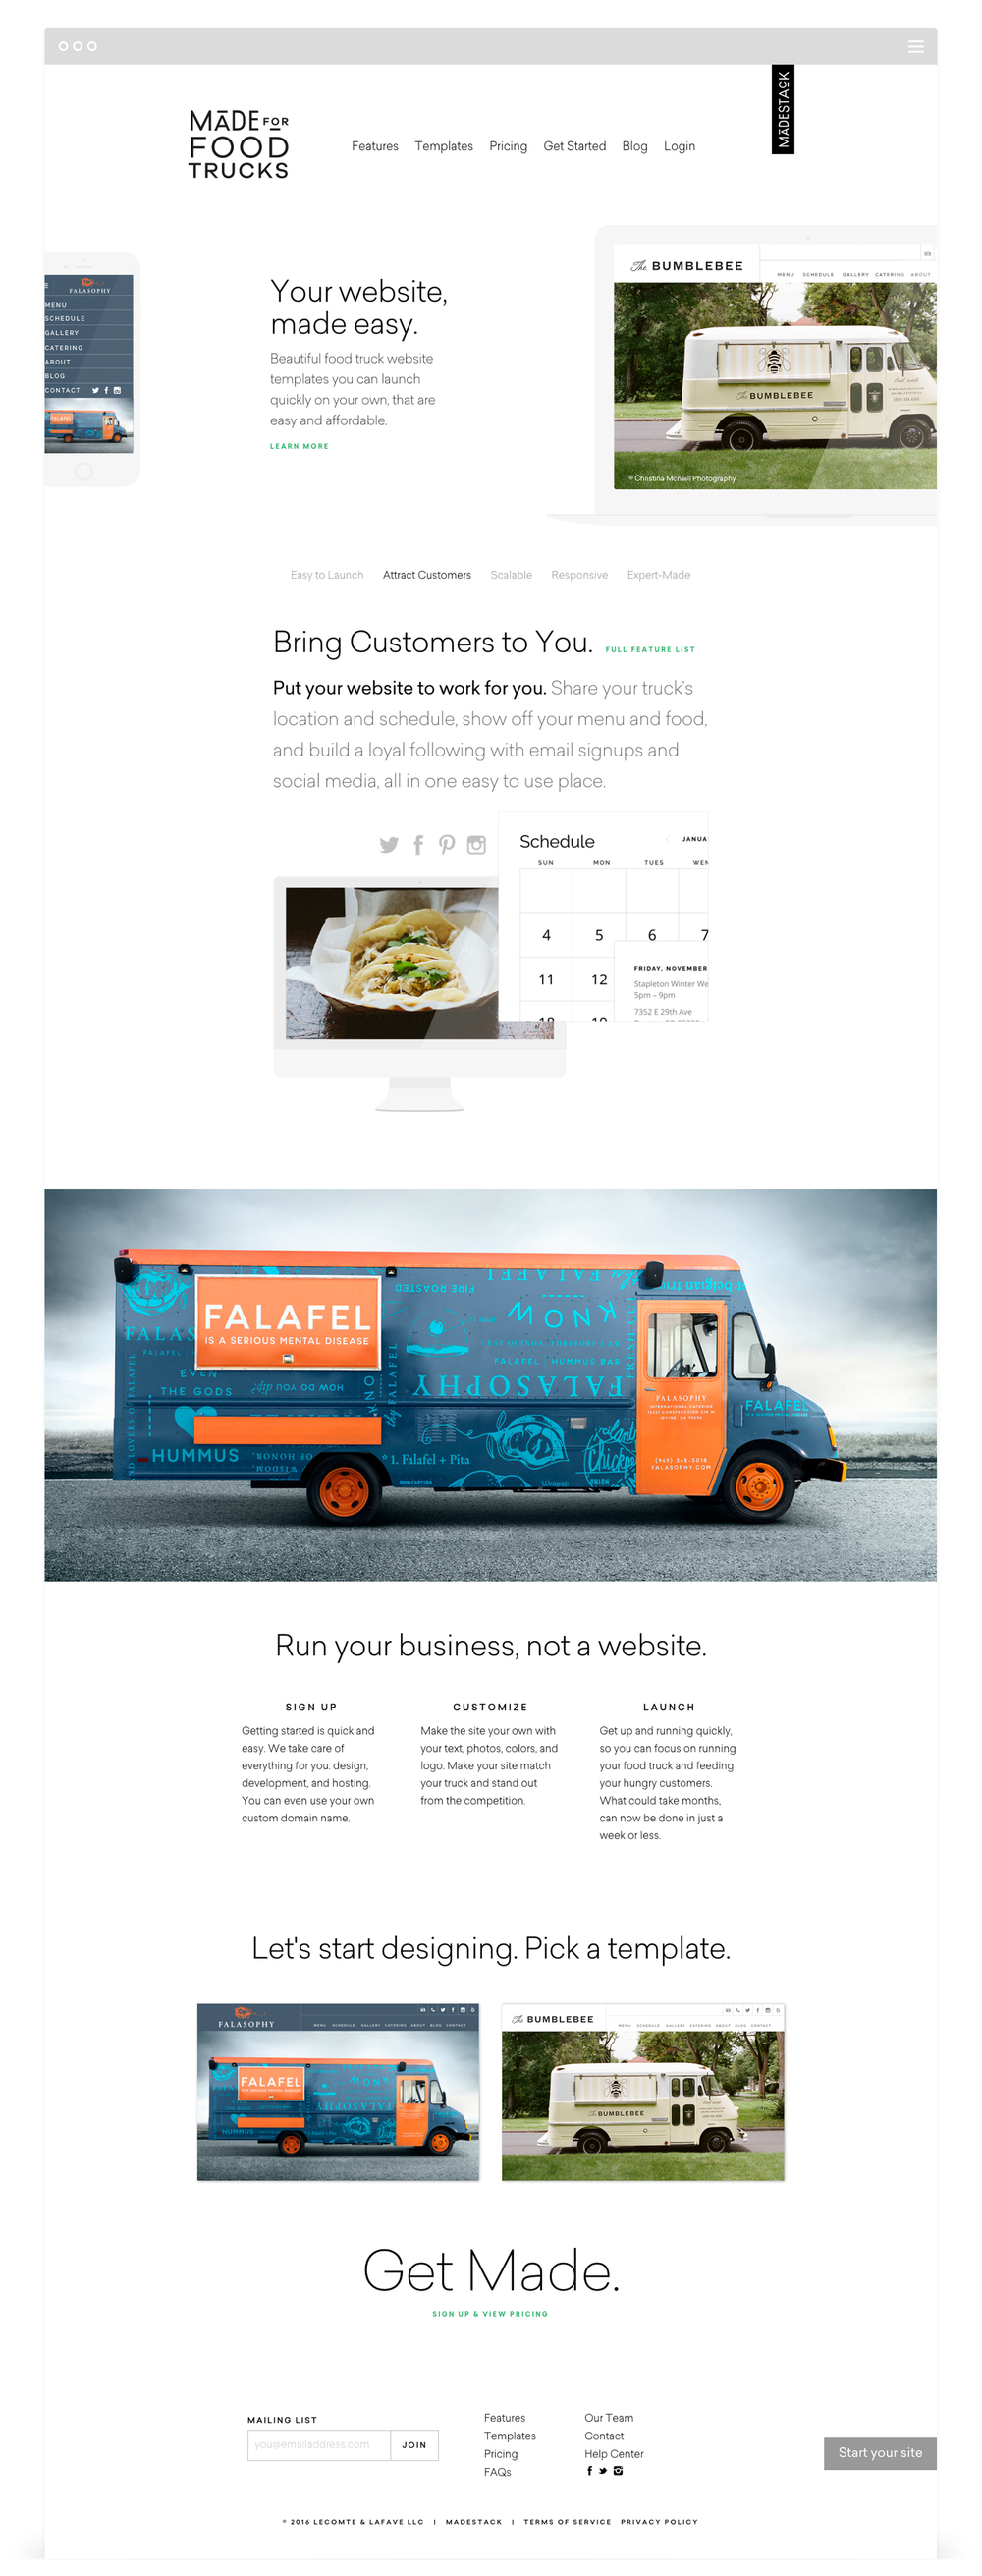 Website Development for Made for Food Trucks by Second + West